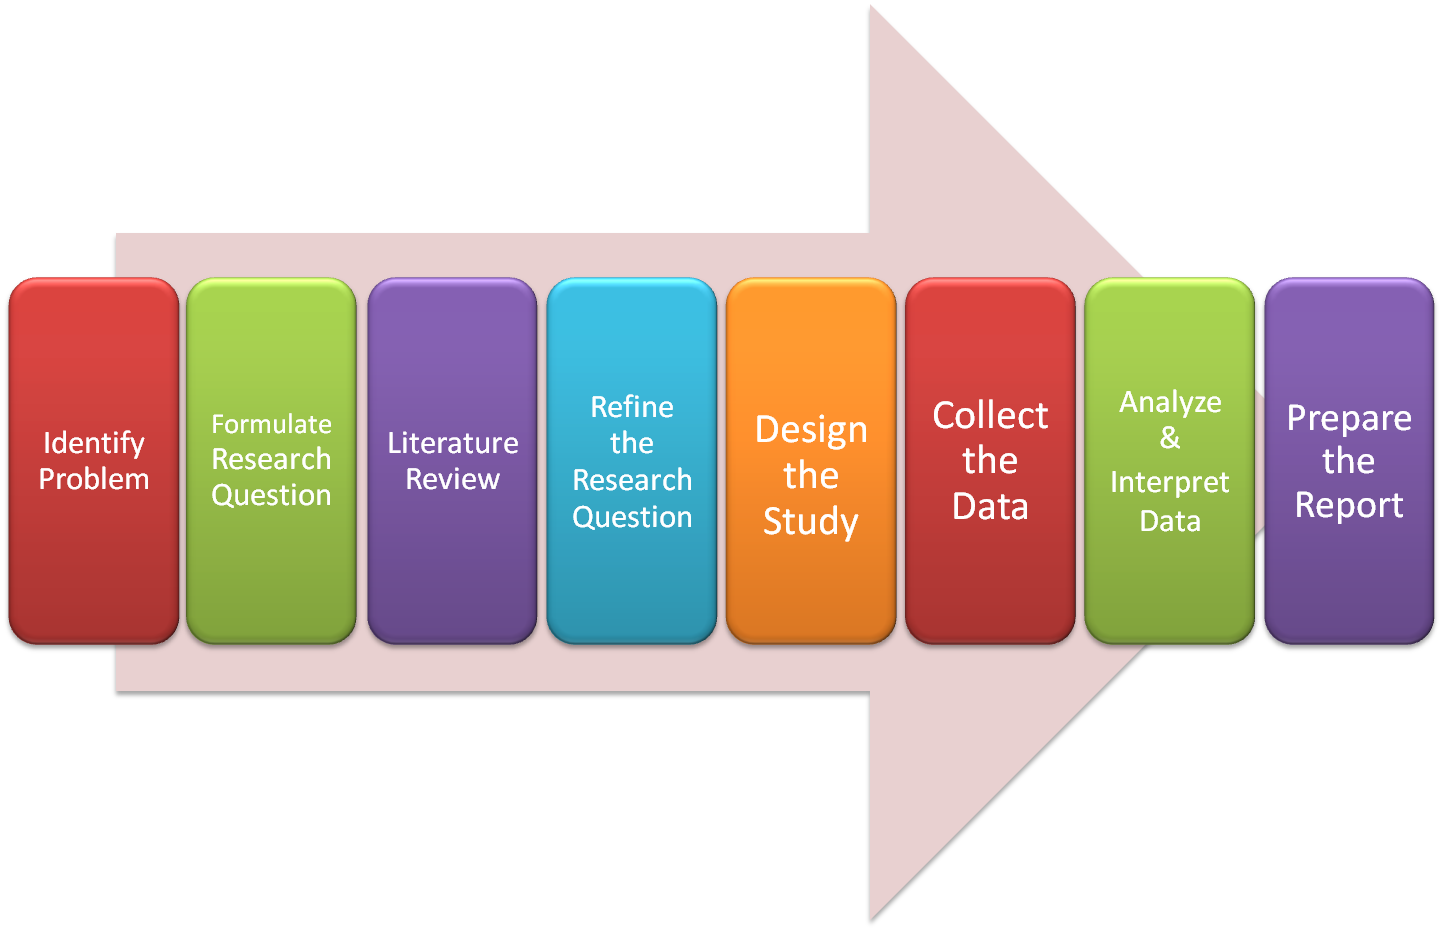 illustration showing the research process